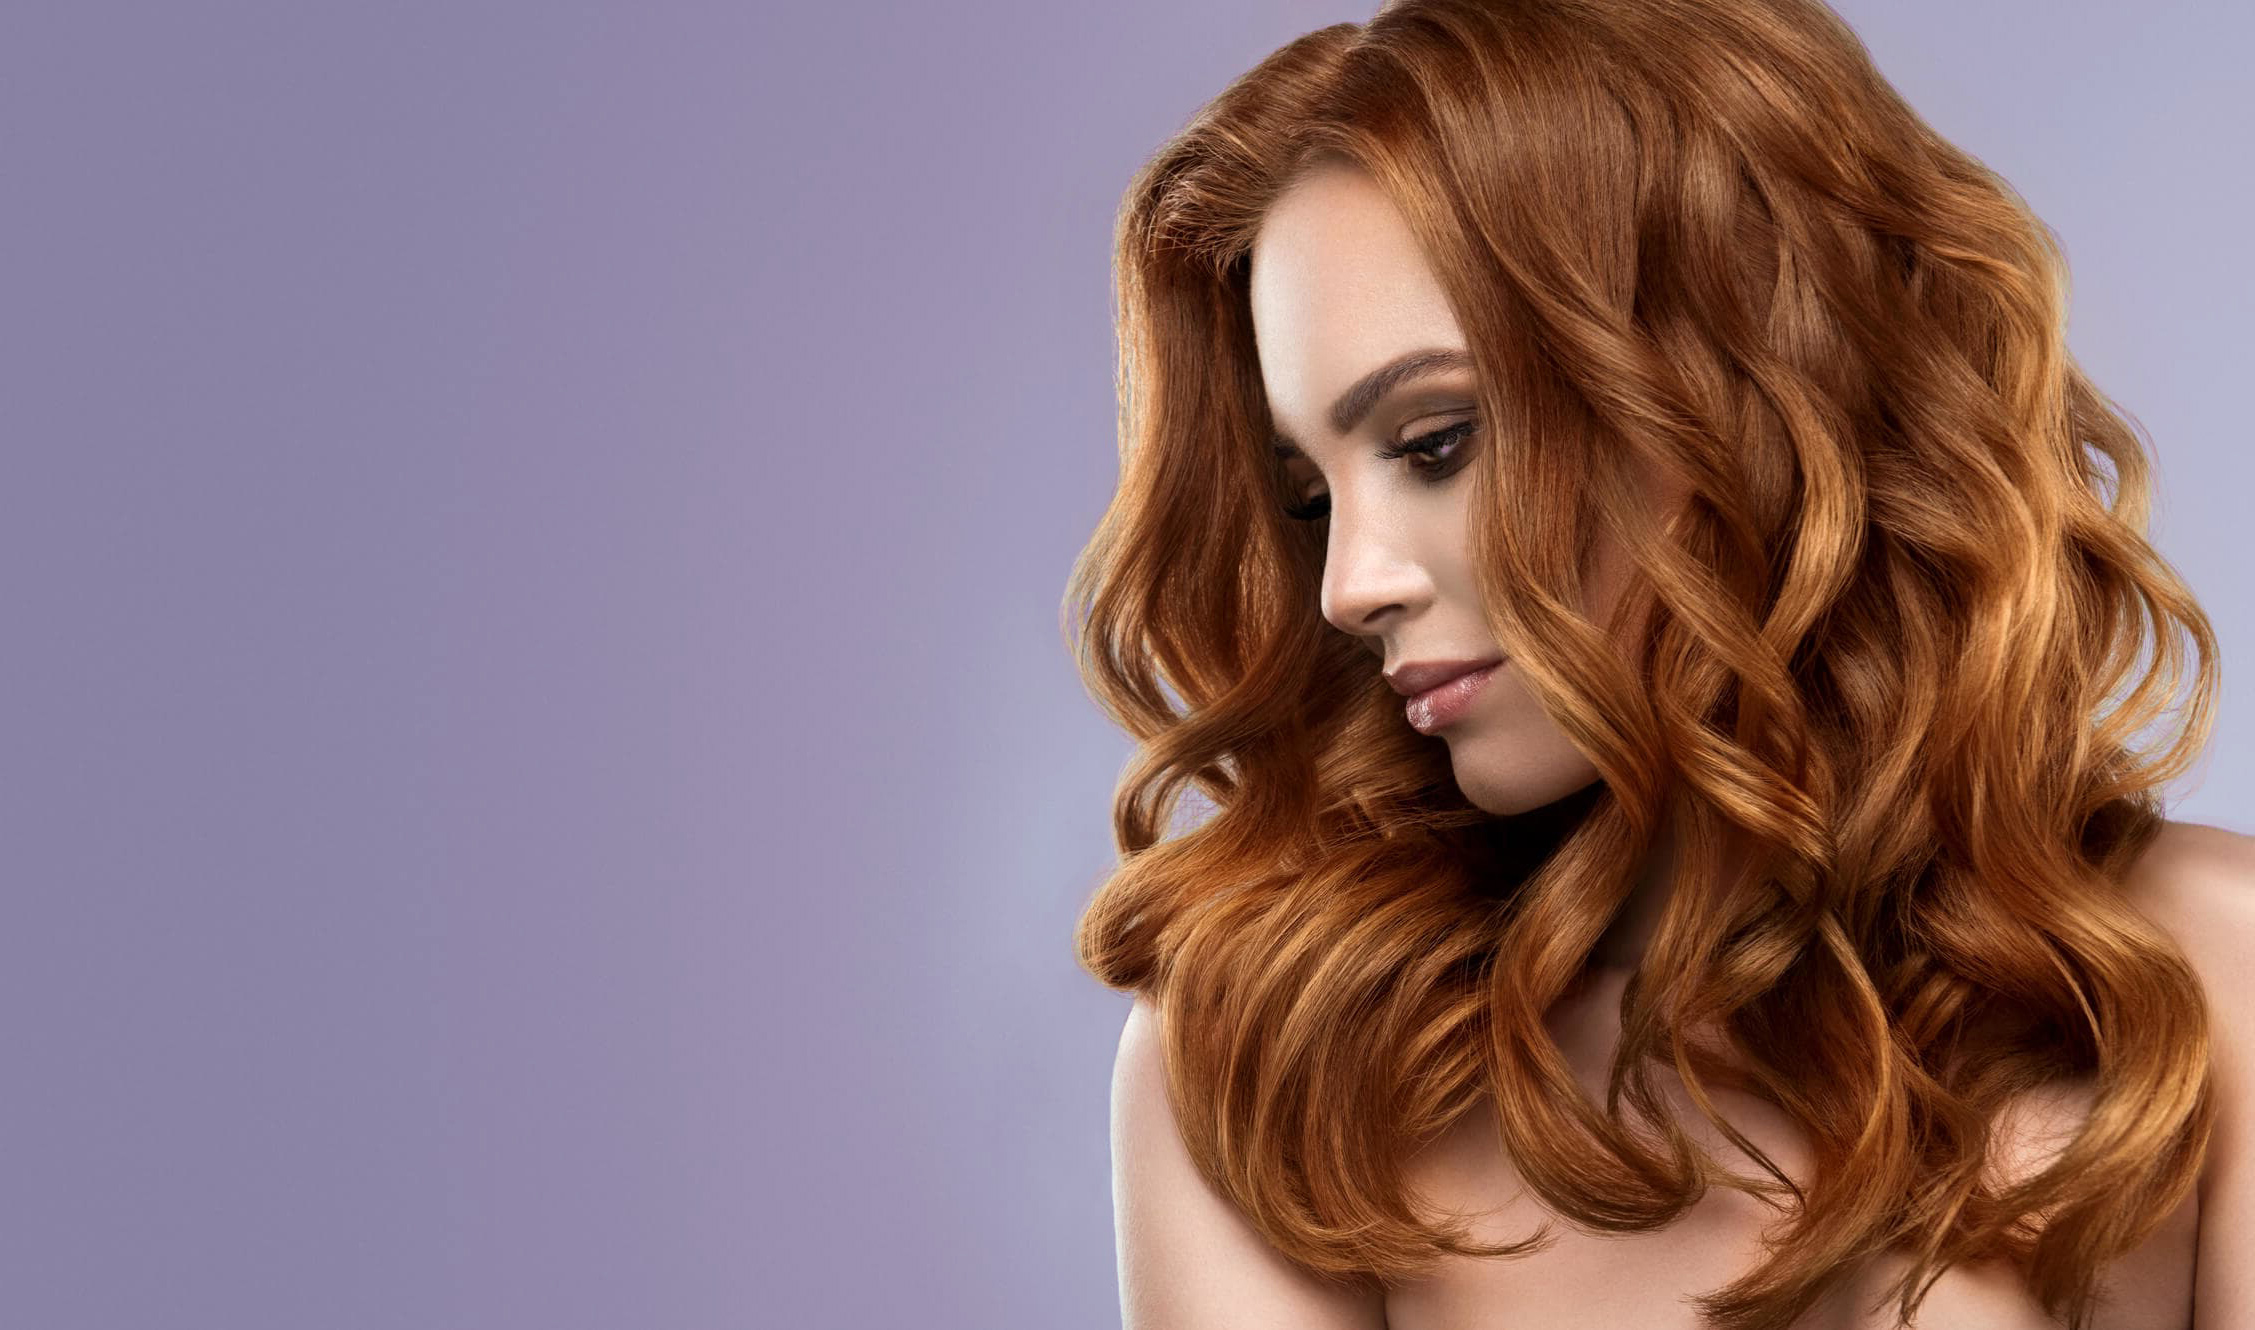 Making a perfect look with the best hairdresser south Yarra